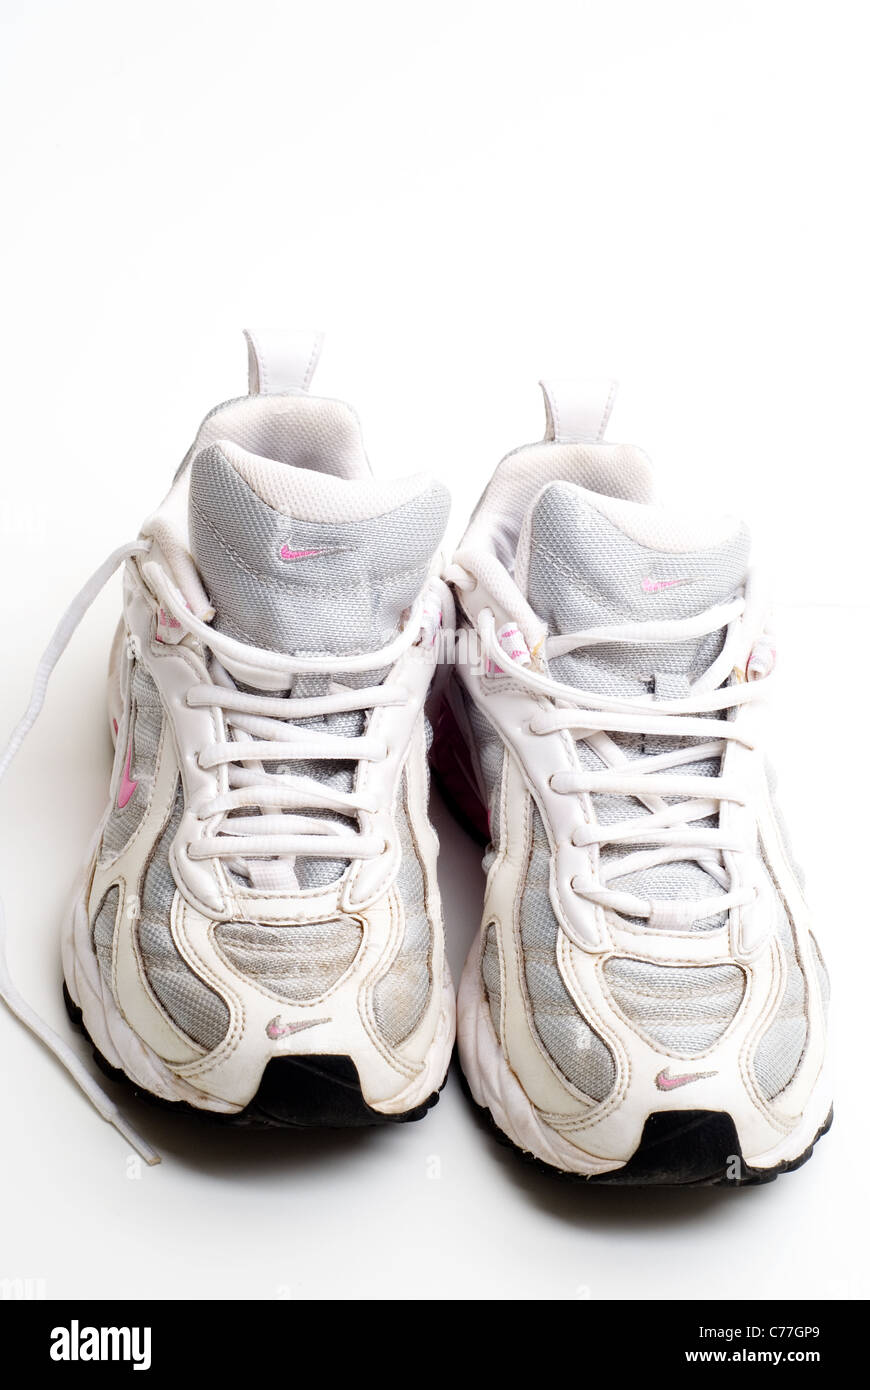 Pair of old worn Nike running Shoes. - Stock Image